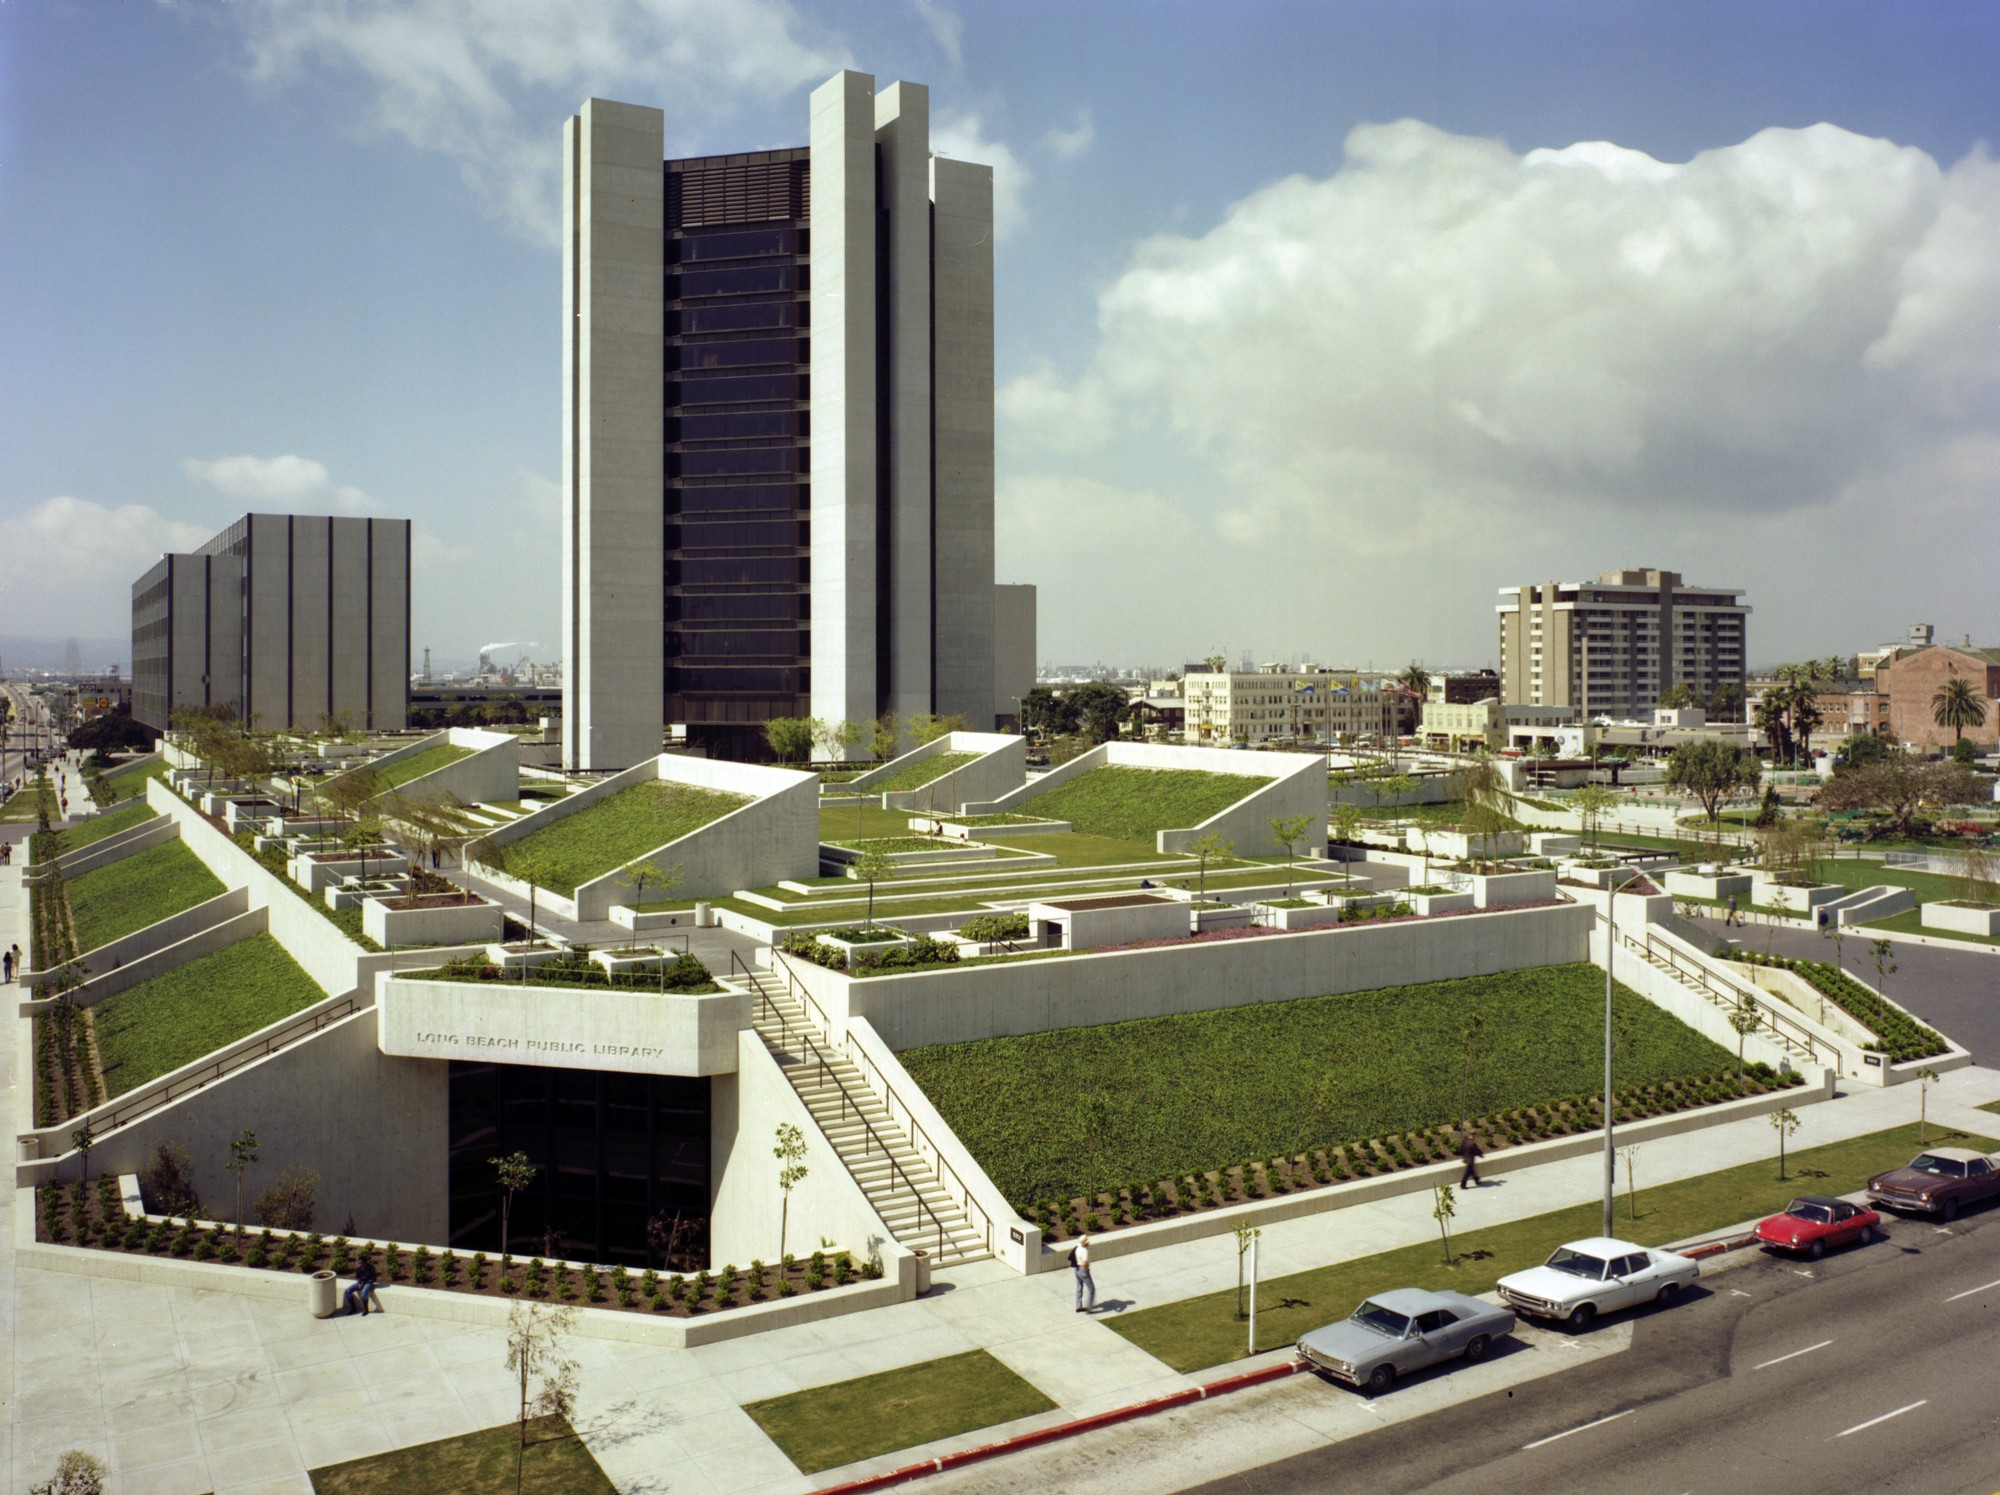 1978 Long Beach Civic Center Ca Photo Courtesy Of Wayne Thom